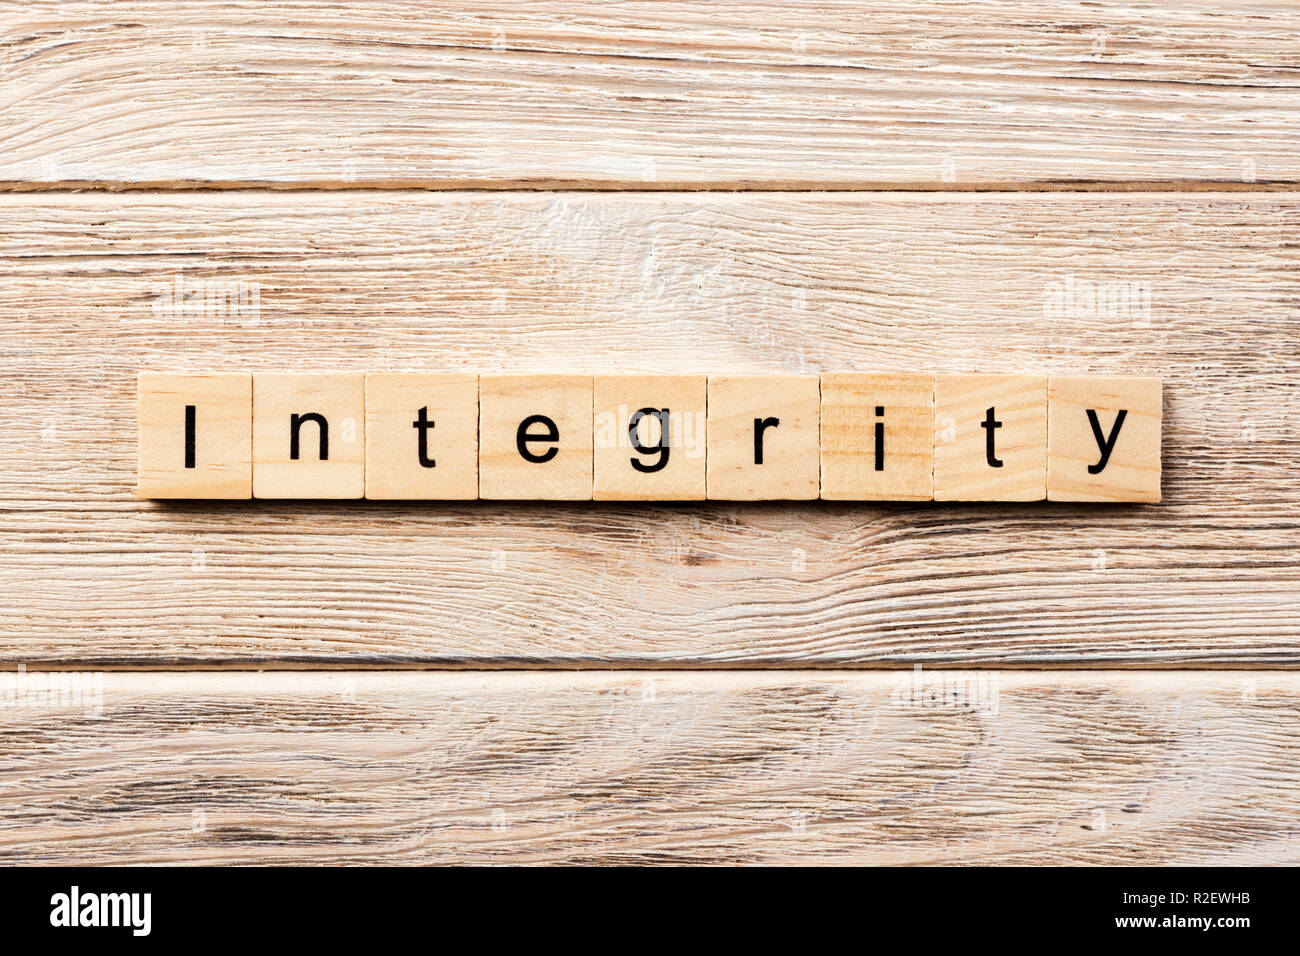 integrity word written on wood block. integrity text on table, concept. - Stock Image